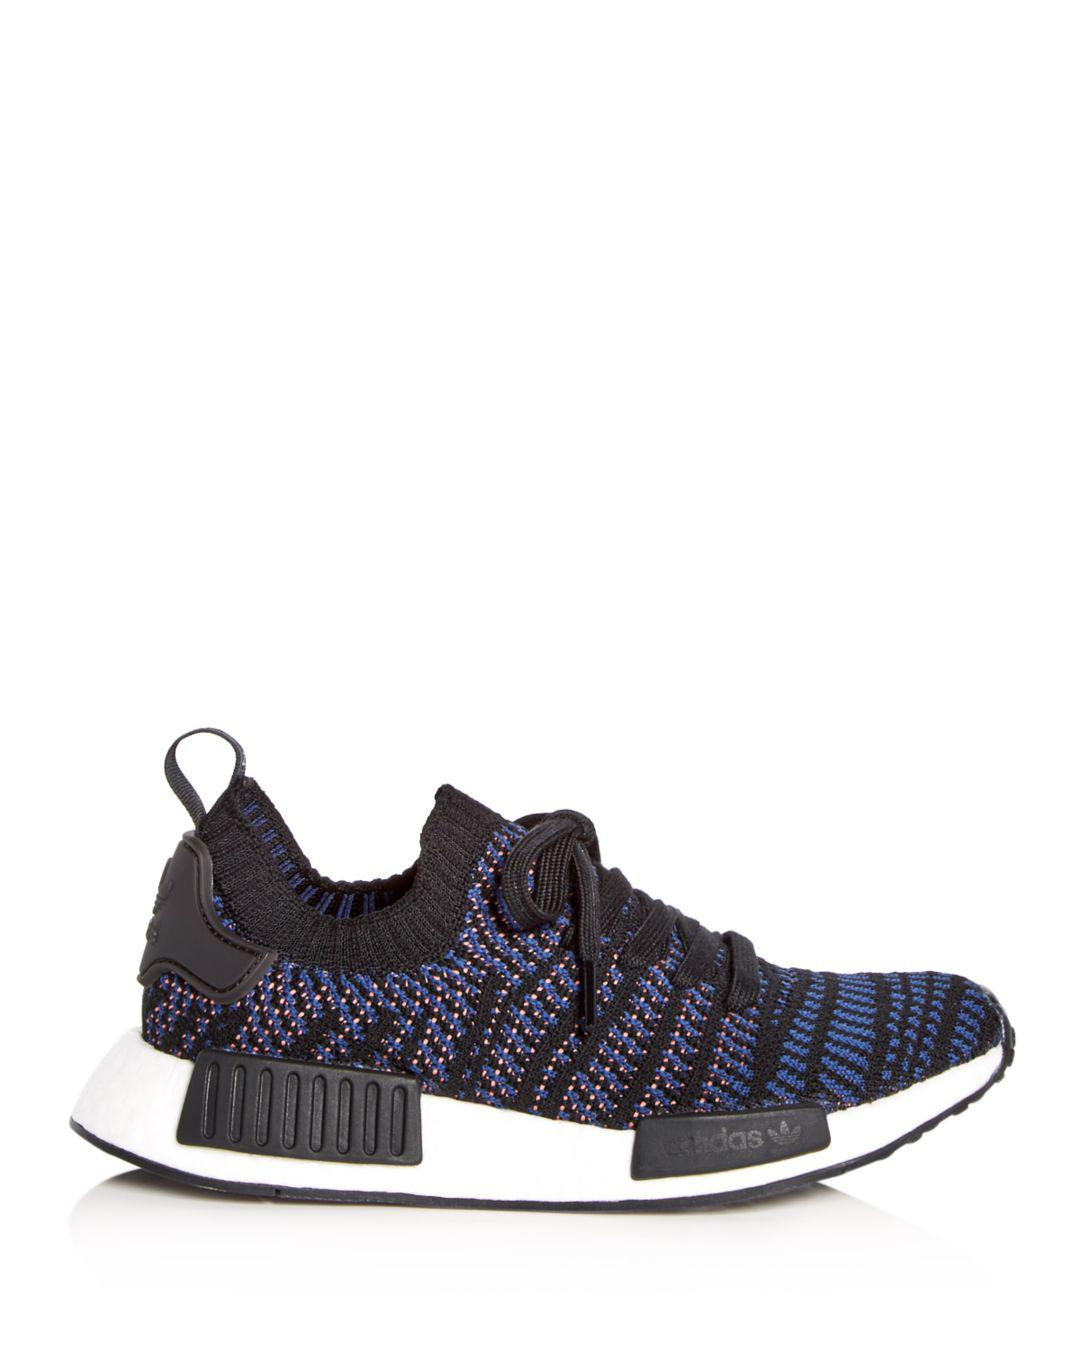 dc015e90ae3ec Lyst - adidas Women s Nmd R1 Stlt Primeknit Casual Sneakers From Finish Line  in Black - Save 17%